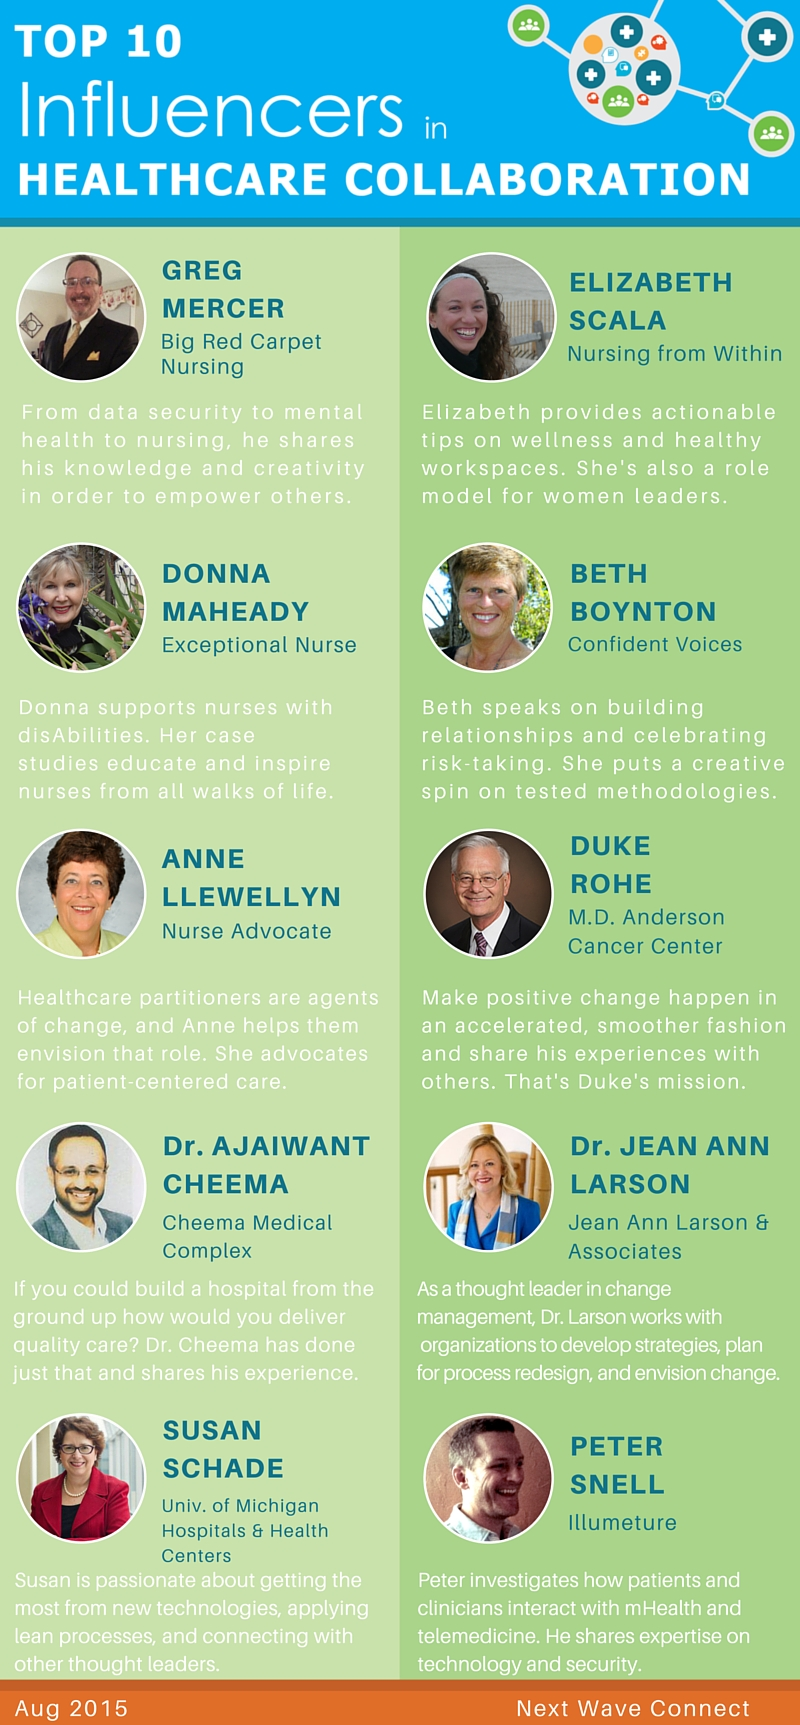 Next Wave Connect's Top 10 Influencers in Healthare Collaboration